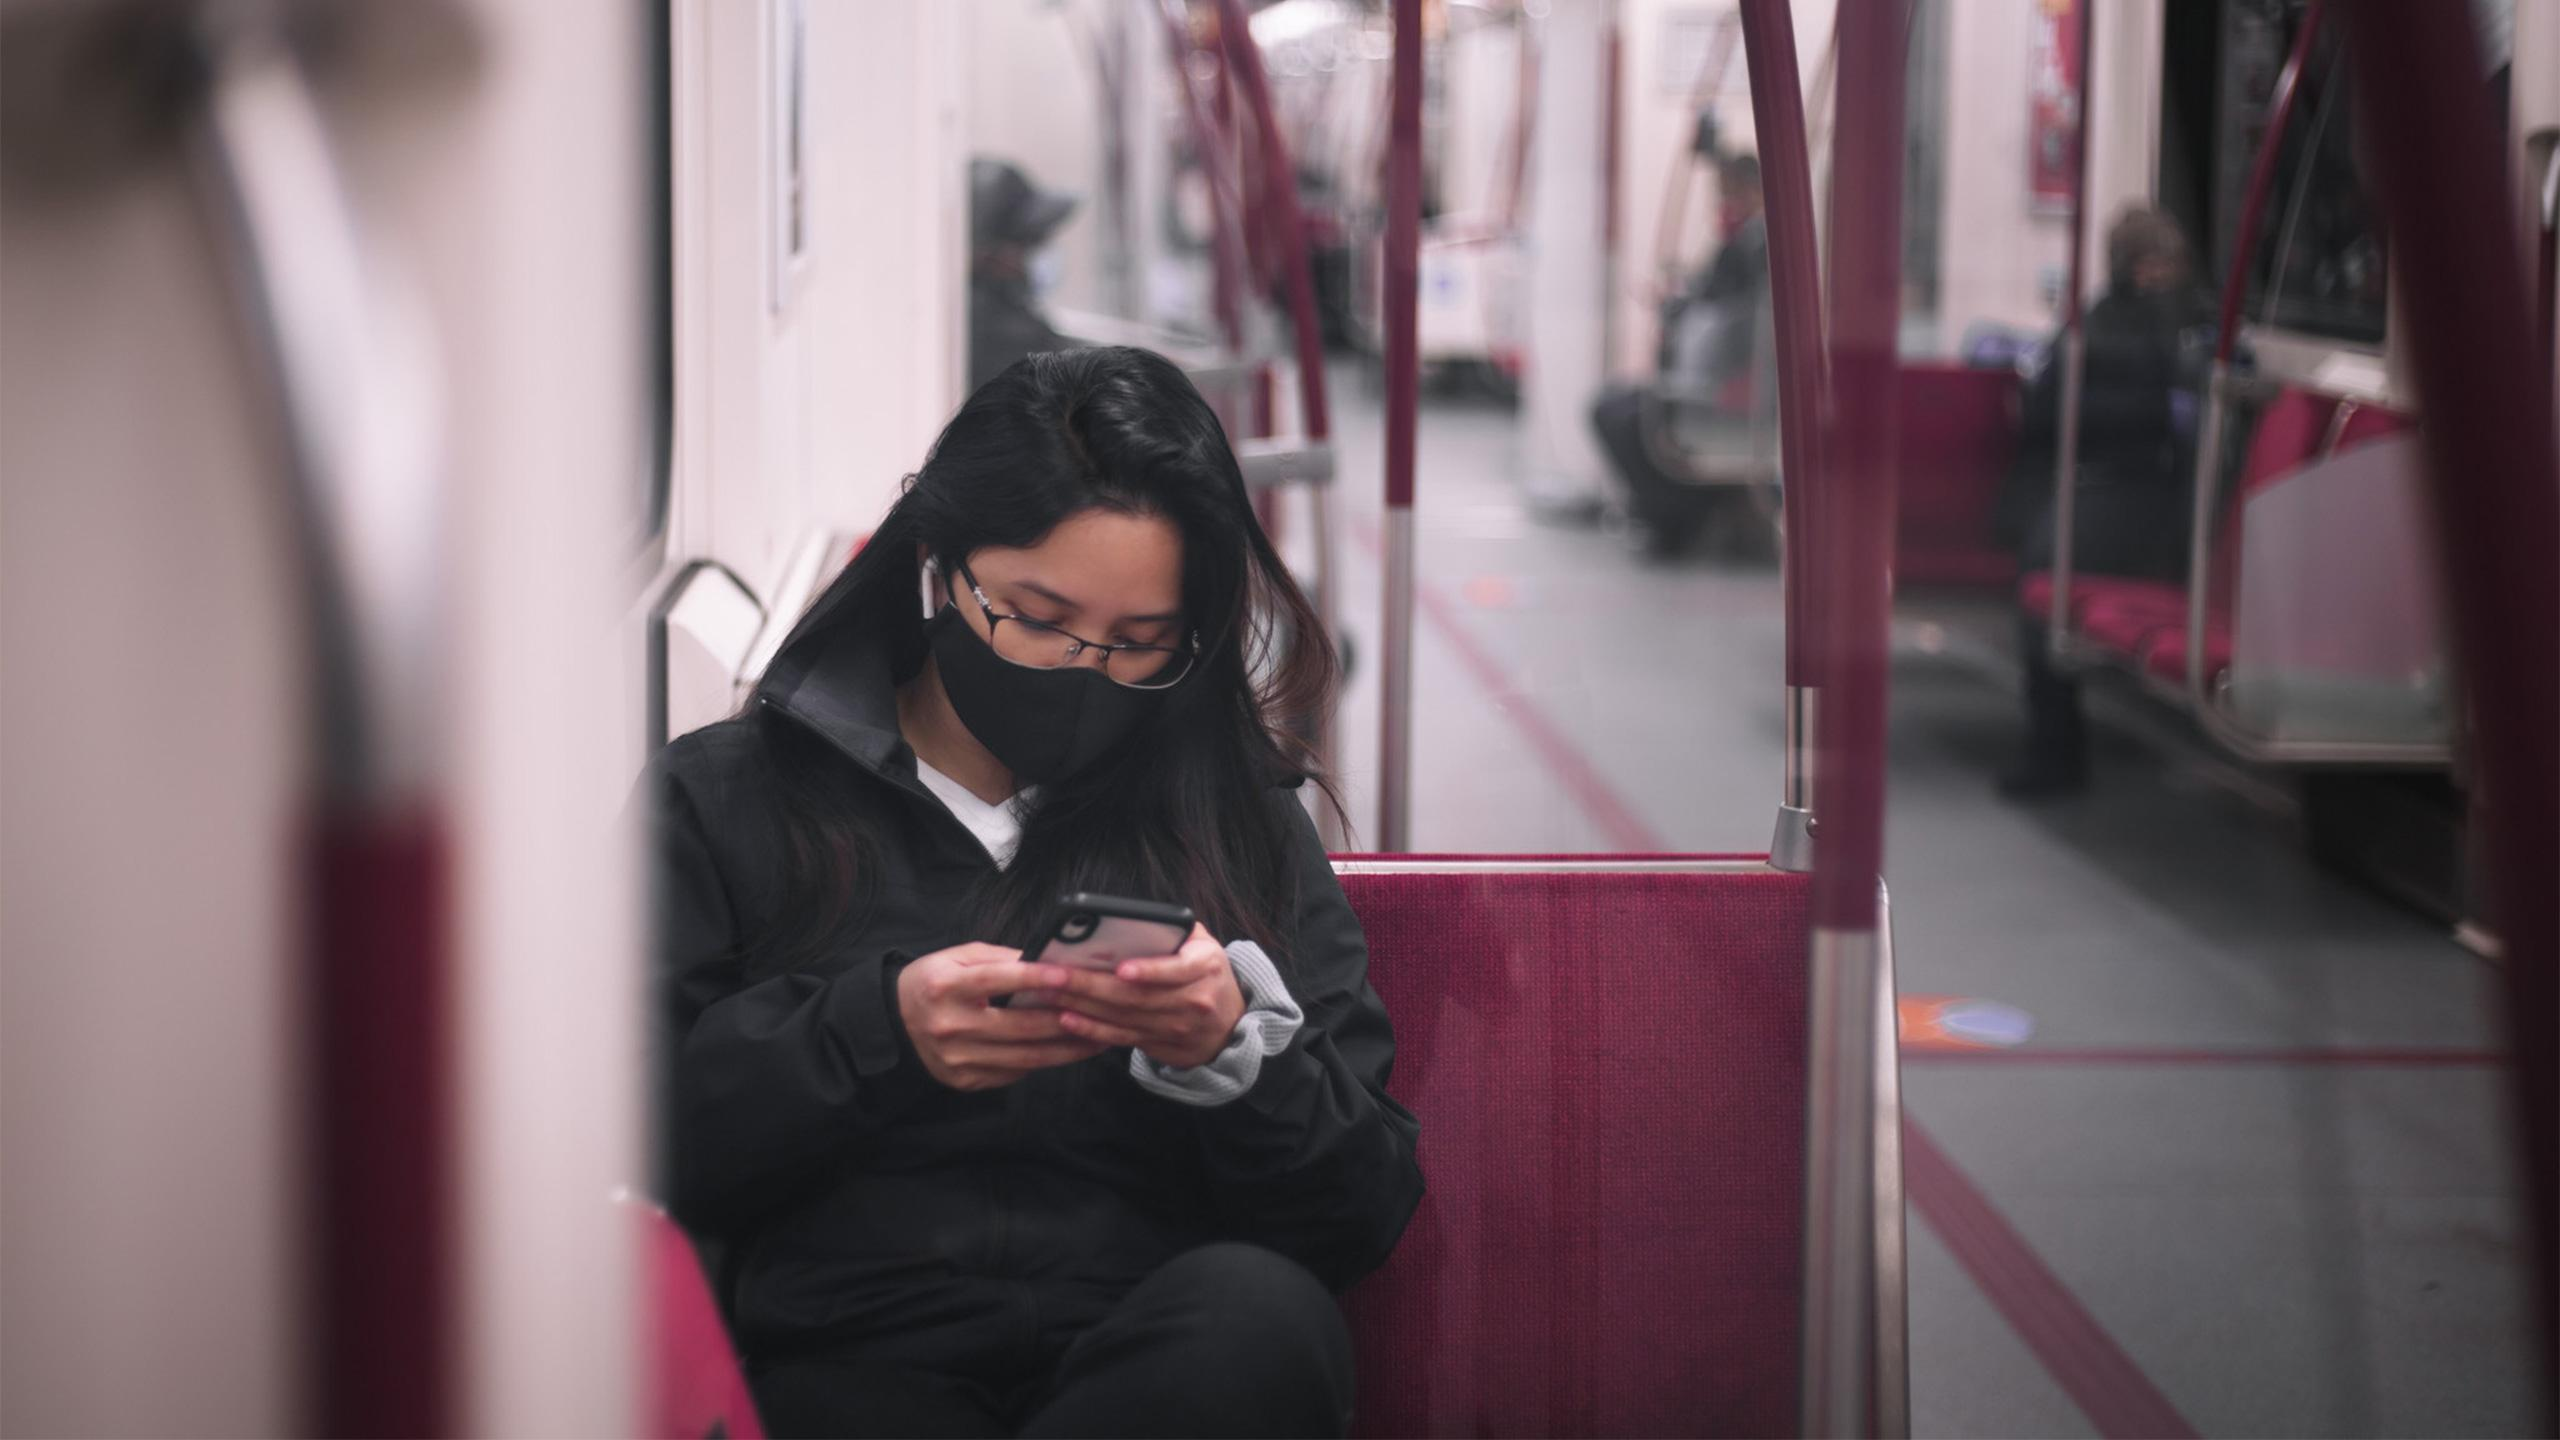 Woman wearing a mask sitting on the TTC subway looking at her phone.